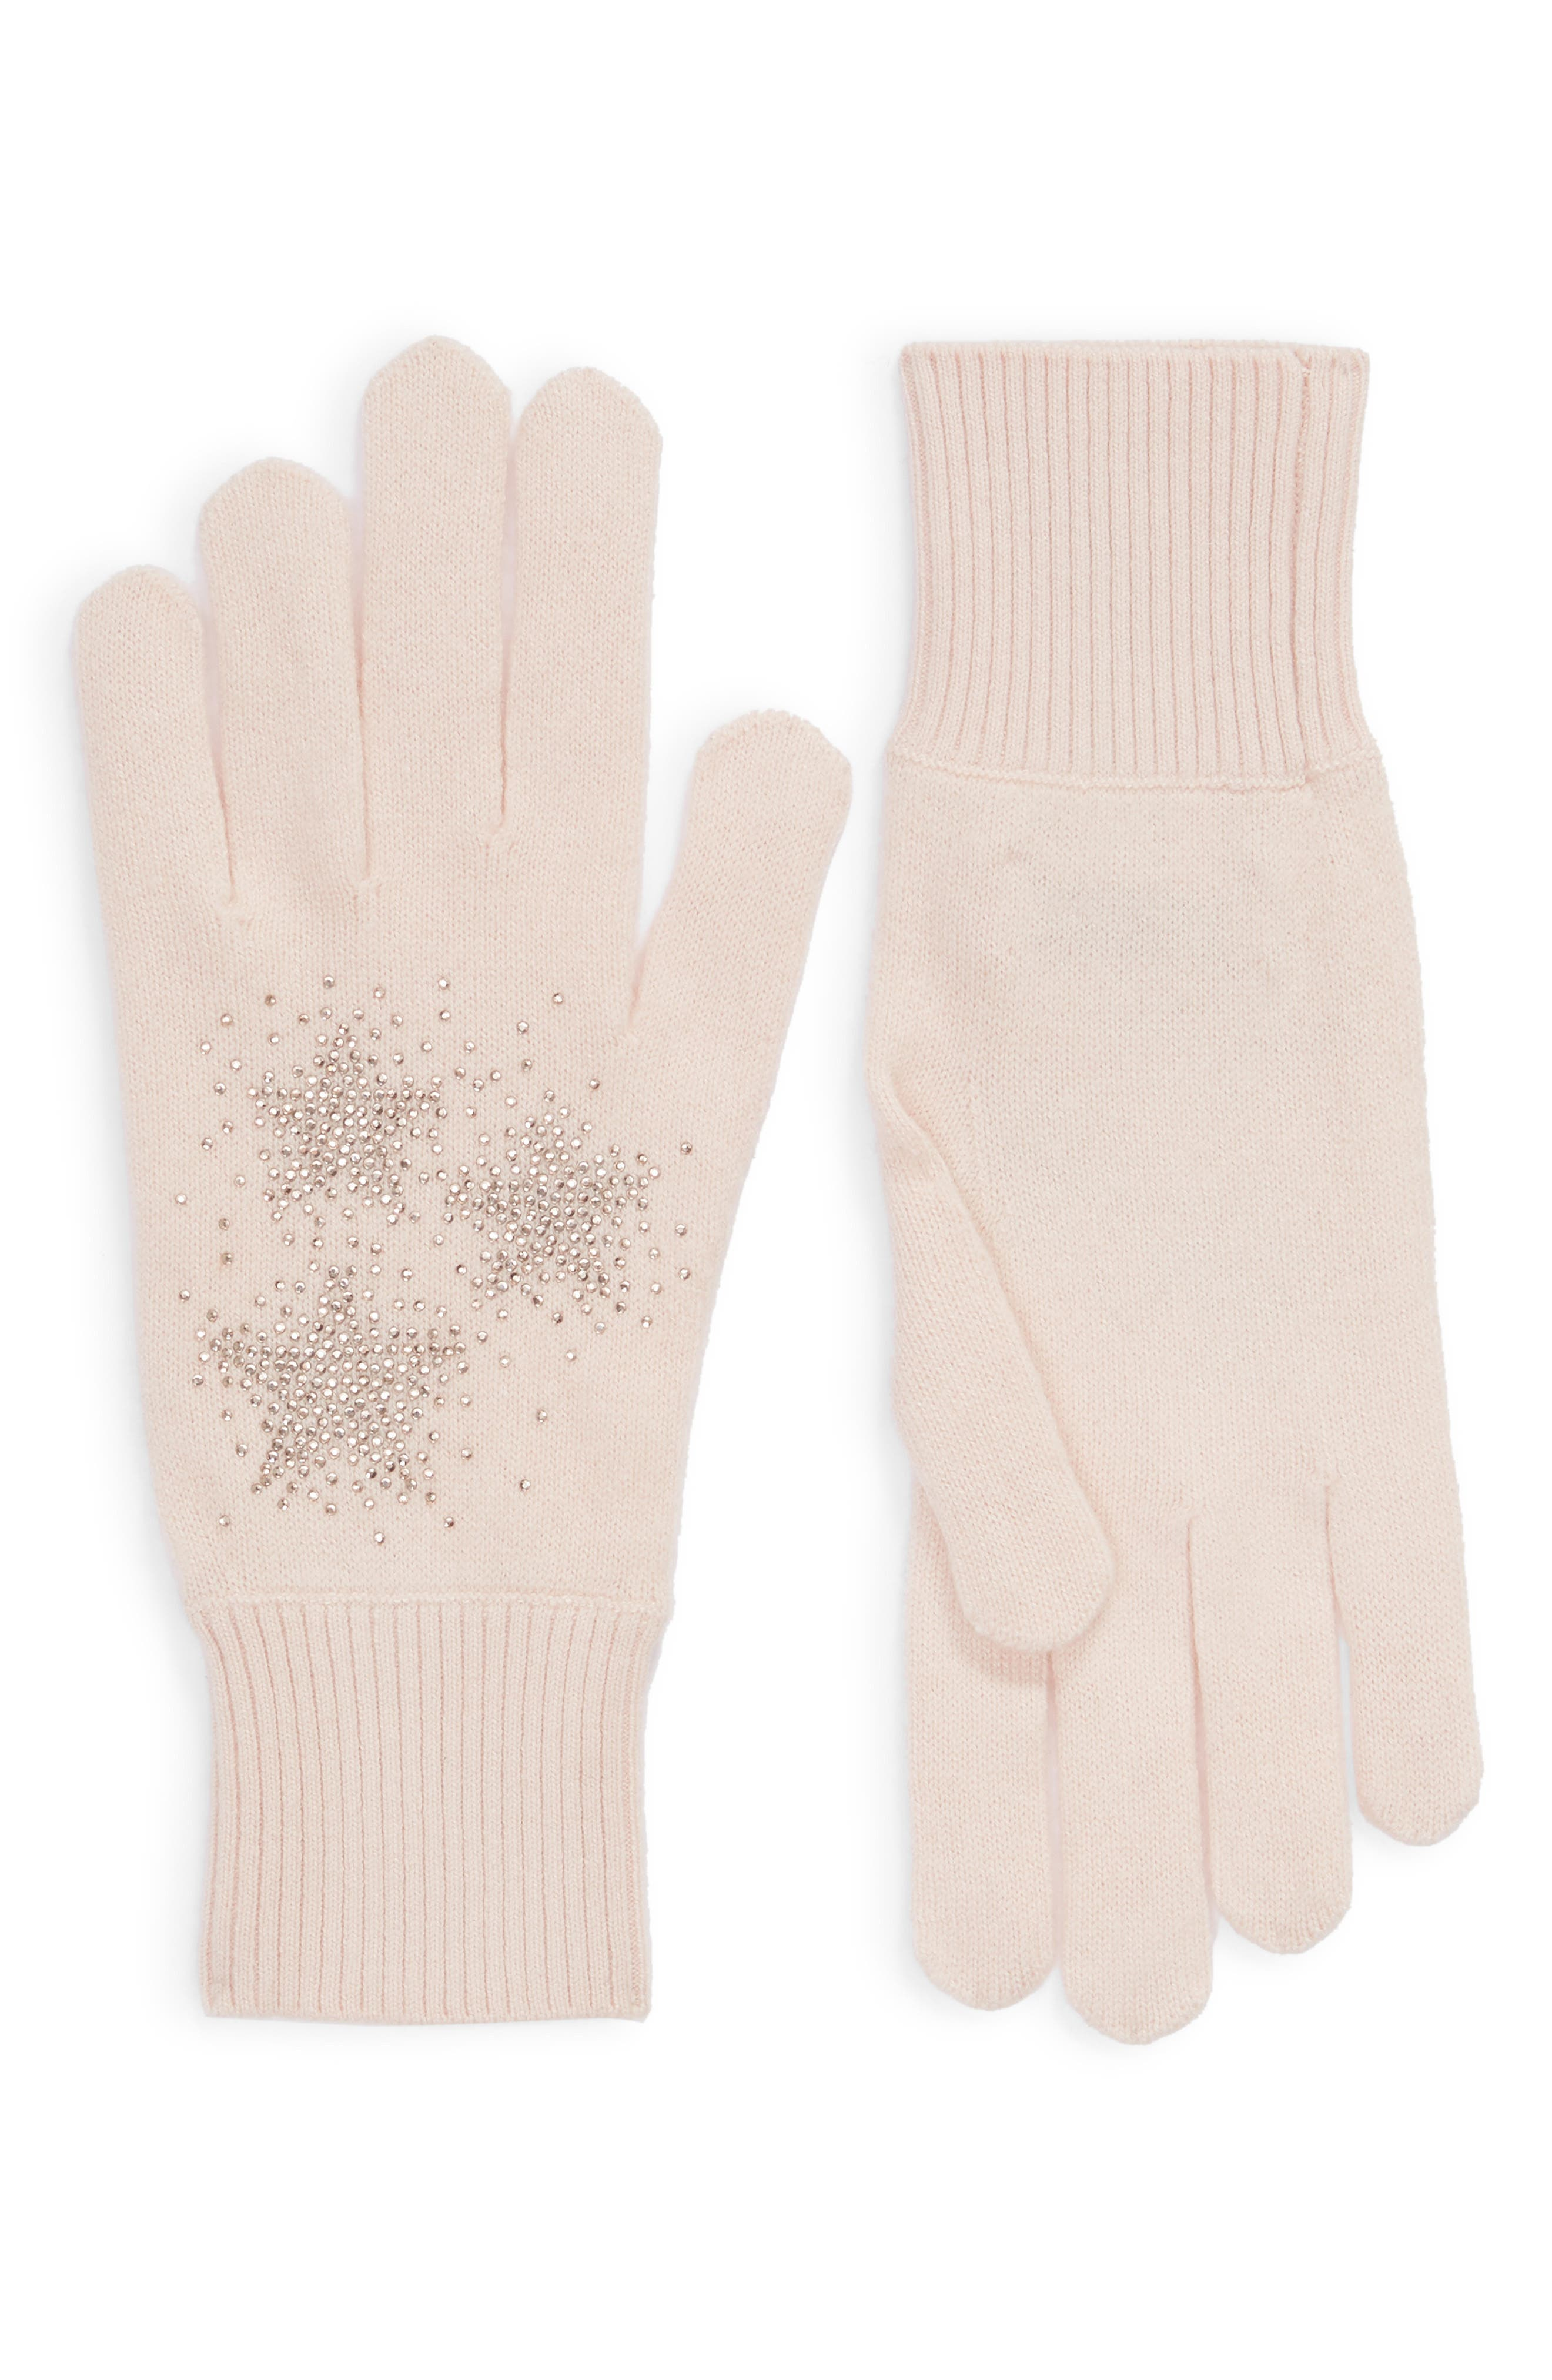 Star Hotfix Stud Gloves,                         Main,                         color, NUDE PINK